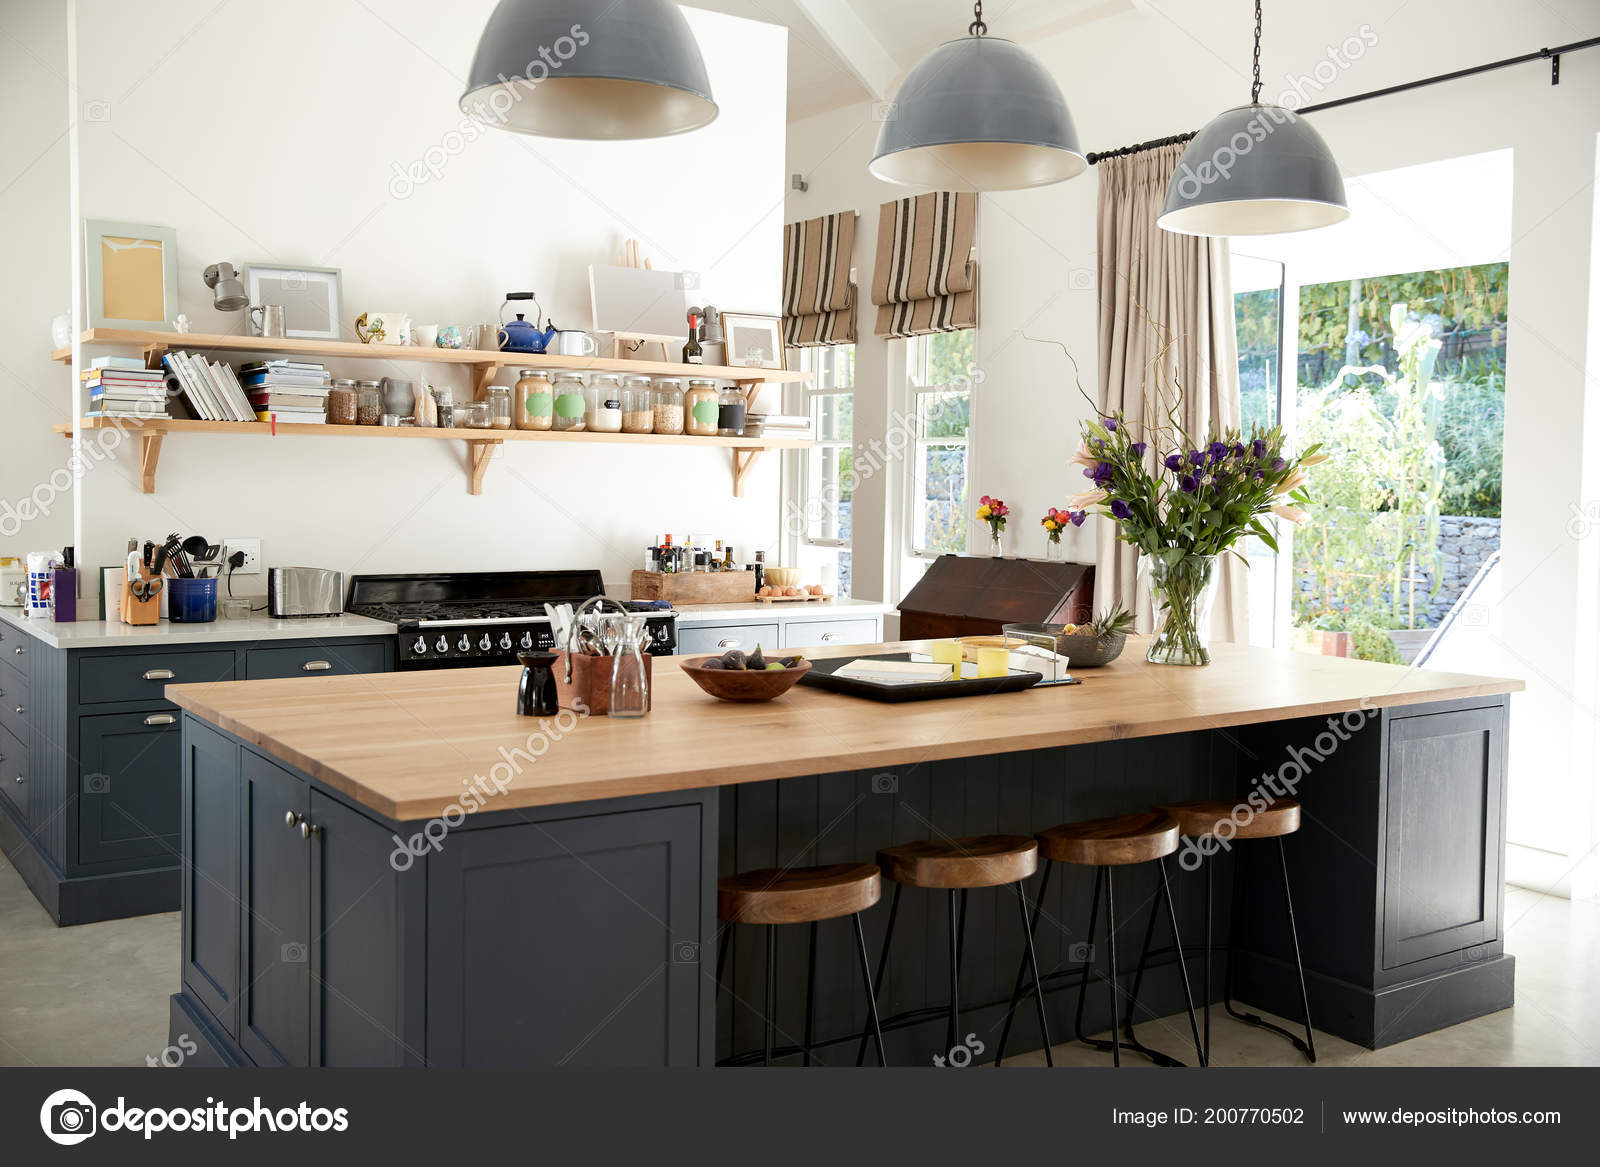 Amplia Cocina Familiar Casa Conversion Periodo Foto De Stock - Cocina-familiar